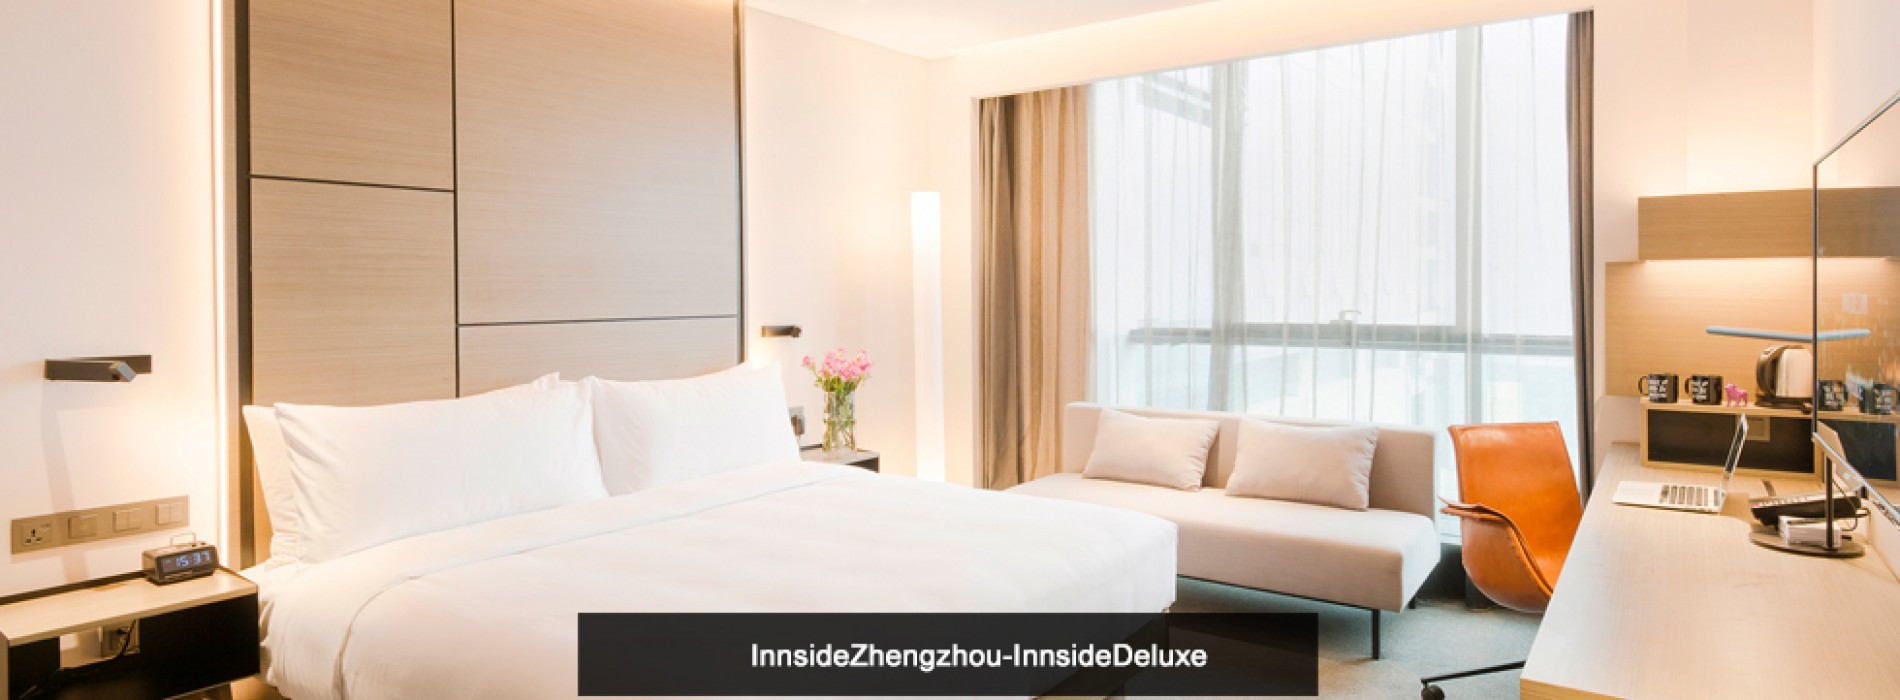 INNSIDE by Meliá hotel group debuts in China with INNSIDE Zhengzhou